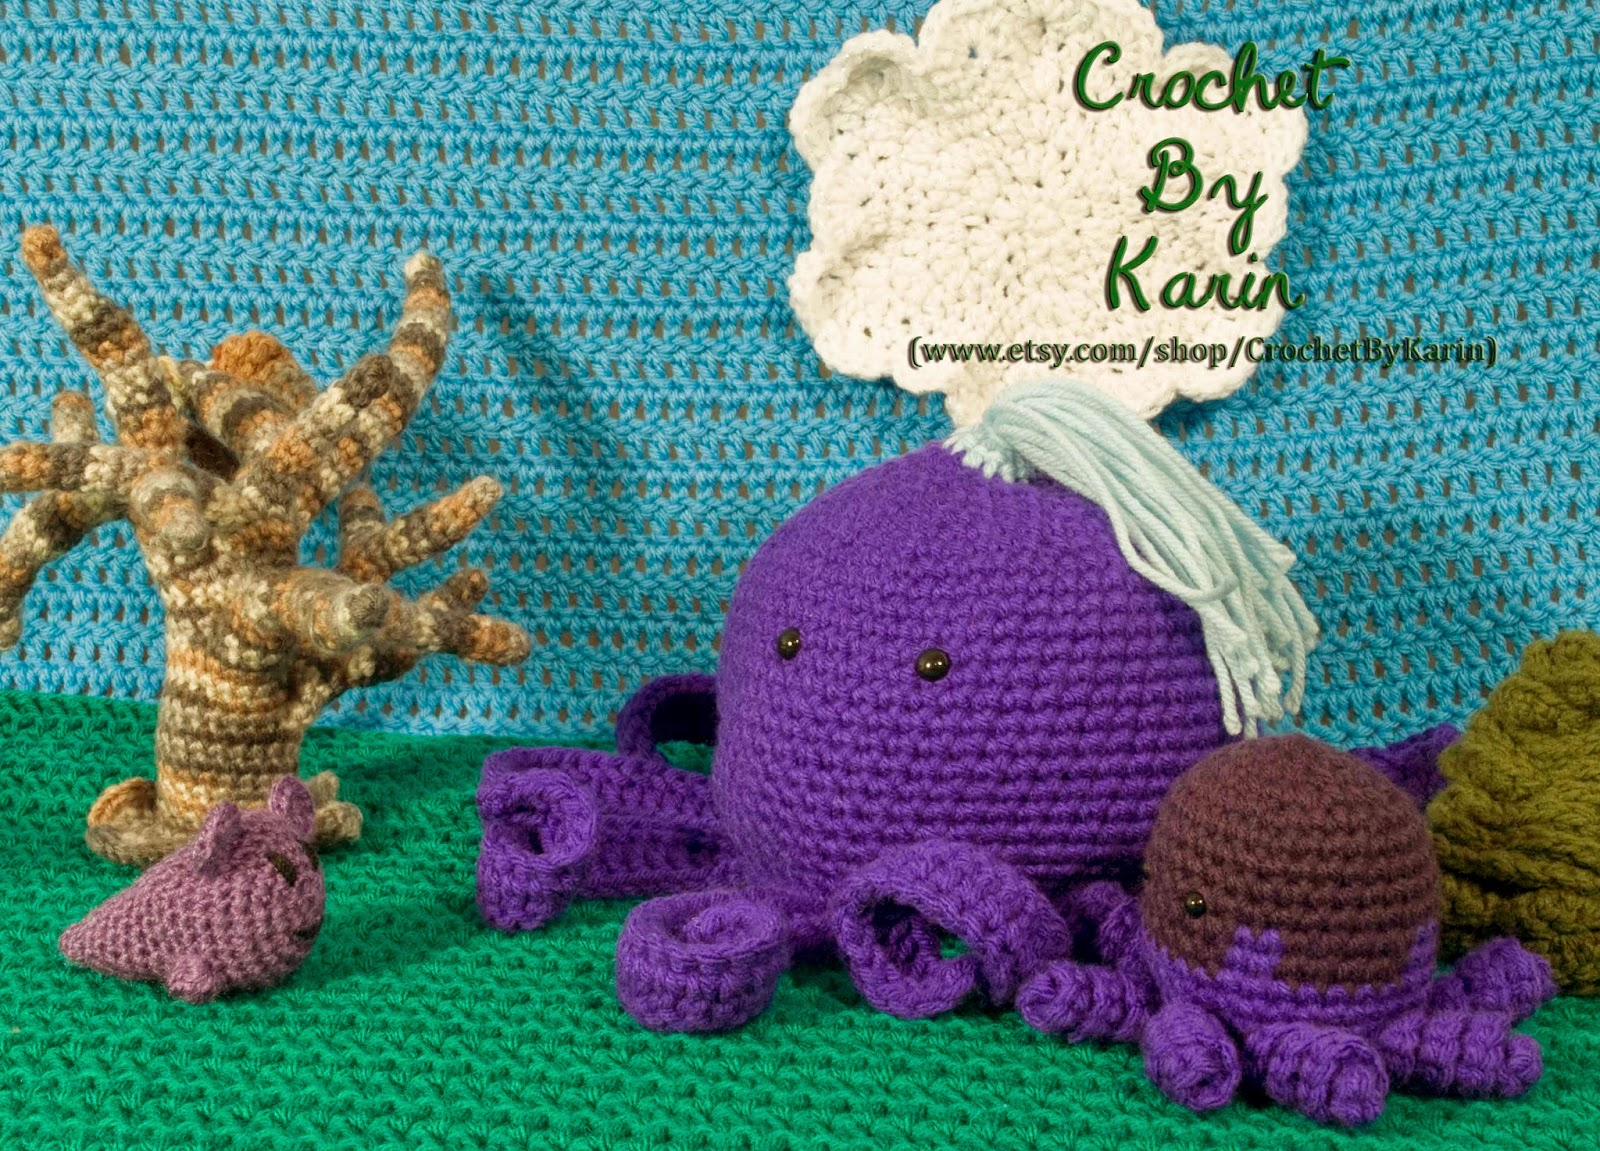 Crocheting Problems : CrochetByKarin: Crochet Monster Dating Problems